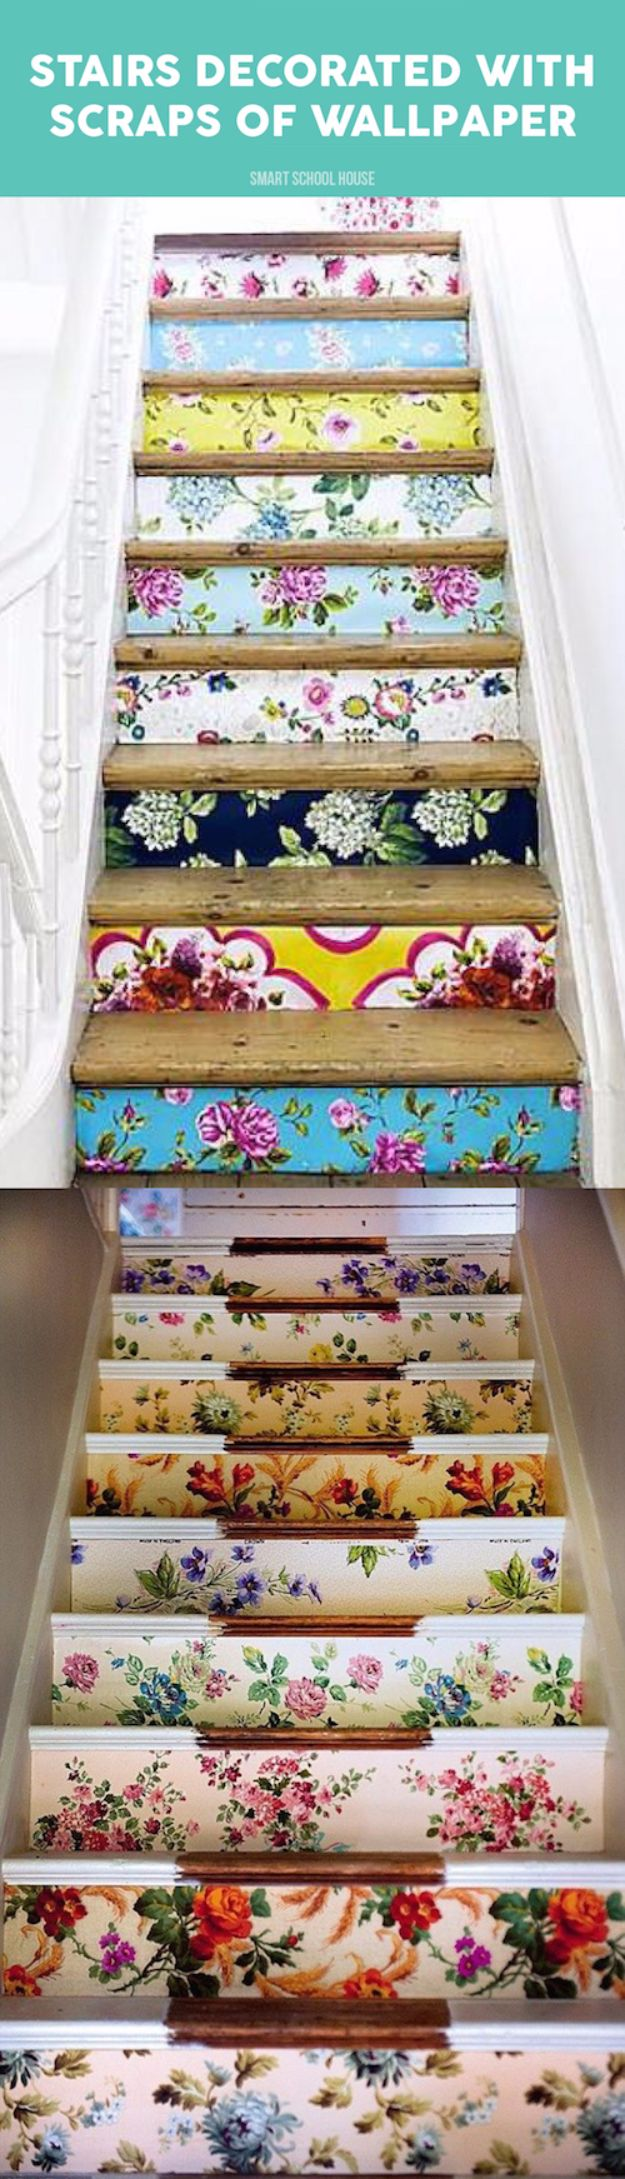 DIY Ideas for Wallpaper Scraps - Stairs Decorated With Scraps Of Wallpaper - Cute Projects and Easy DIY Gift Ideas to Make With Leftover Wall Paper - Fun Home Decor, Homemade Wall Art Idea Tutorials, Creative Ways to Use Old Wallpapers - Cool Crafts for Men, Women and Teens http://diyjoy.com/diy-ideas-wallpaper-scraps